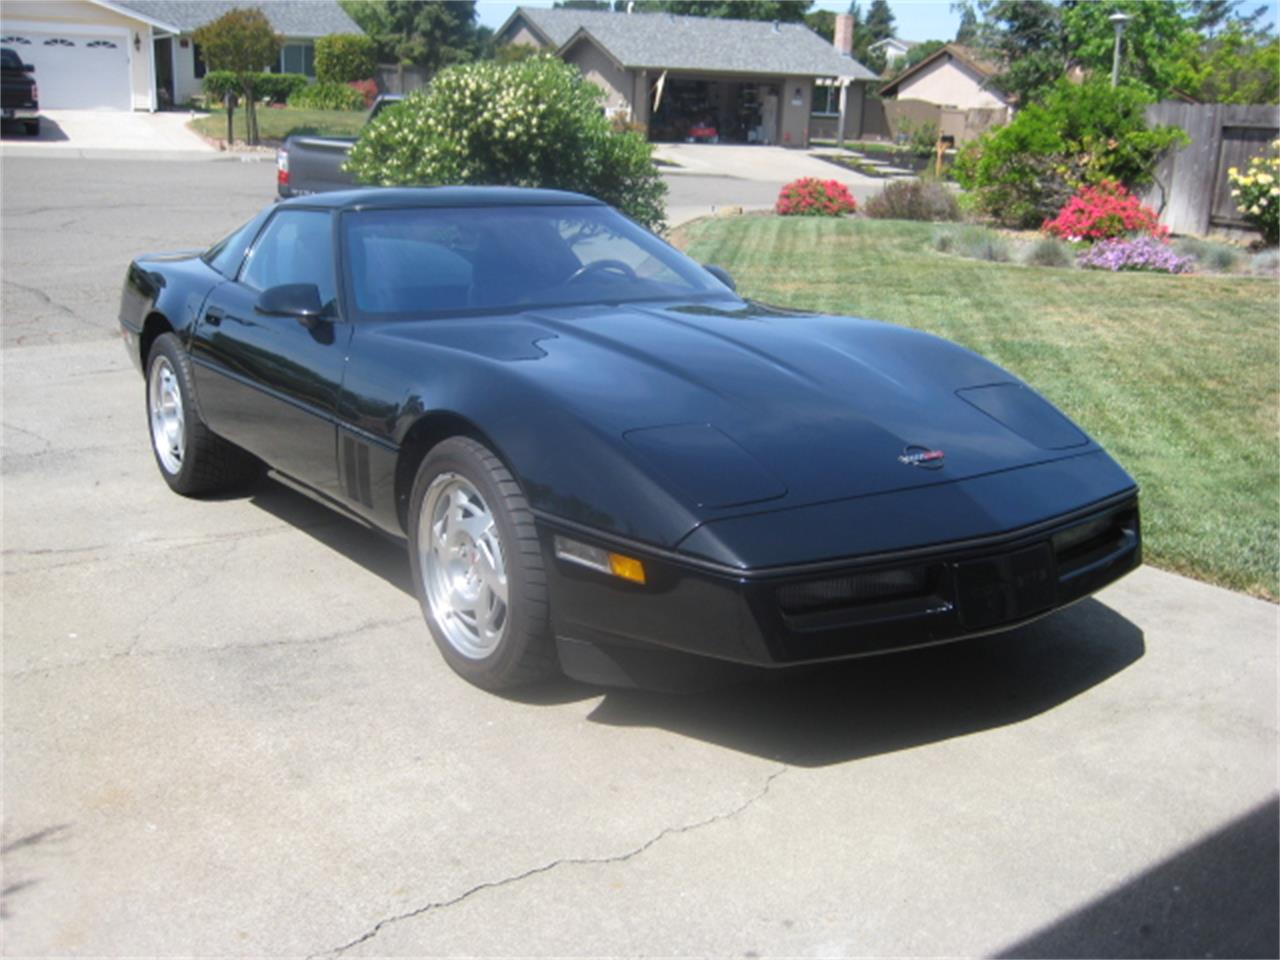 Large Picture of 1990 Chevrolet Corvette ZR1 Offered by a Private Seller - Q3HA